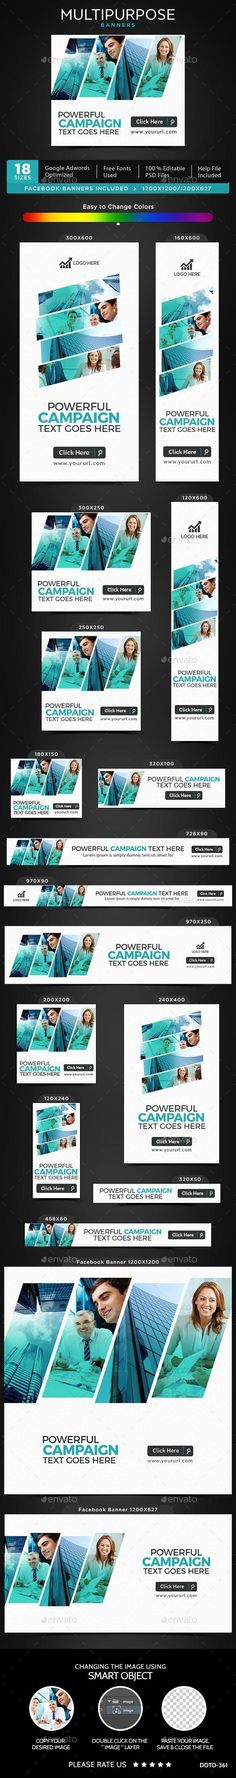 Buy Multipurpose Banners by Hyov on GraphicRiver. Promote your Products and services with this great looking Banner Set. Facebook Ad Size, Web Design, Graphic Design, Banner Template, Banner Design, Social Media, Ads, Templates, Web Banners